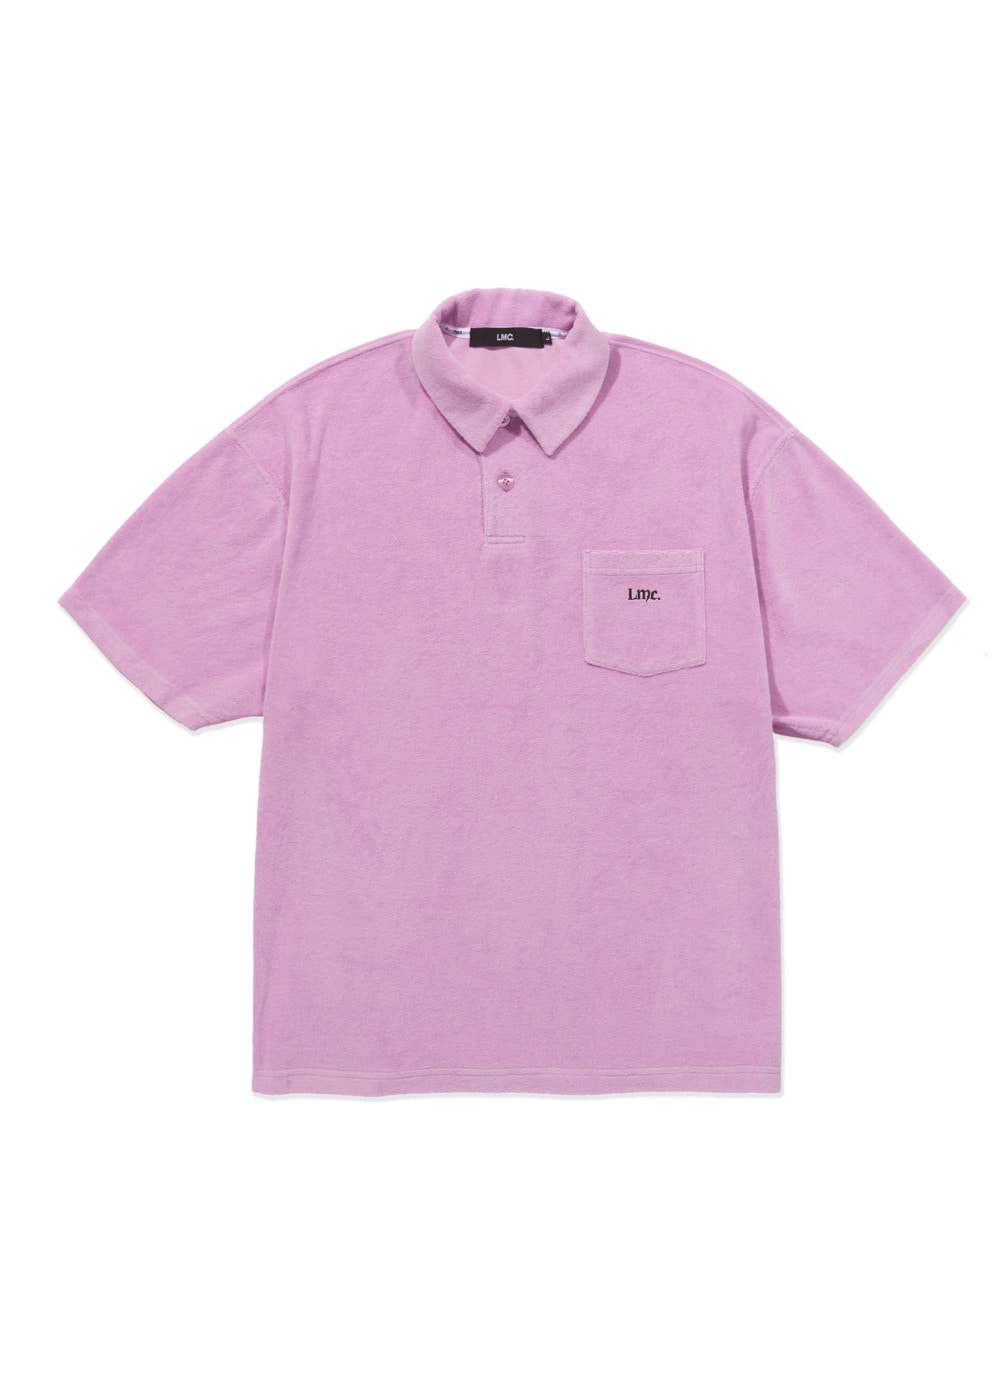 LMC OLDE OG TERRY POLO SHIRT pink